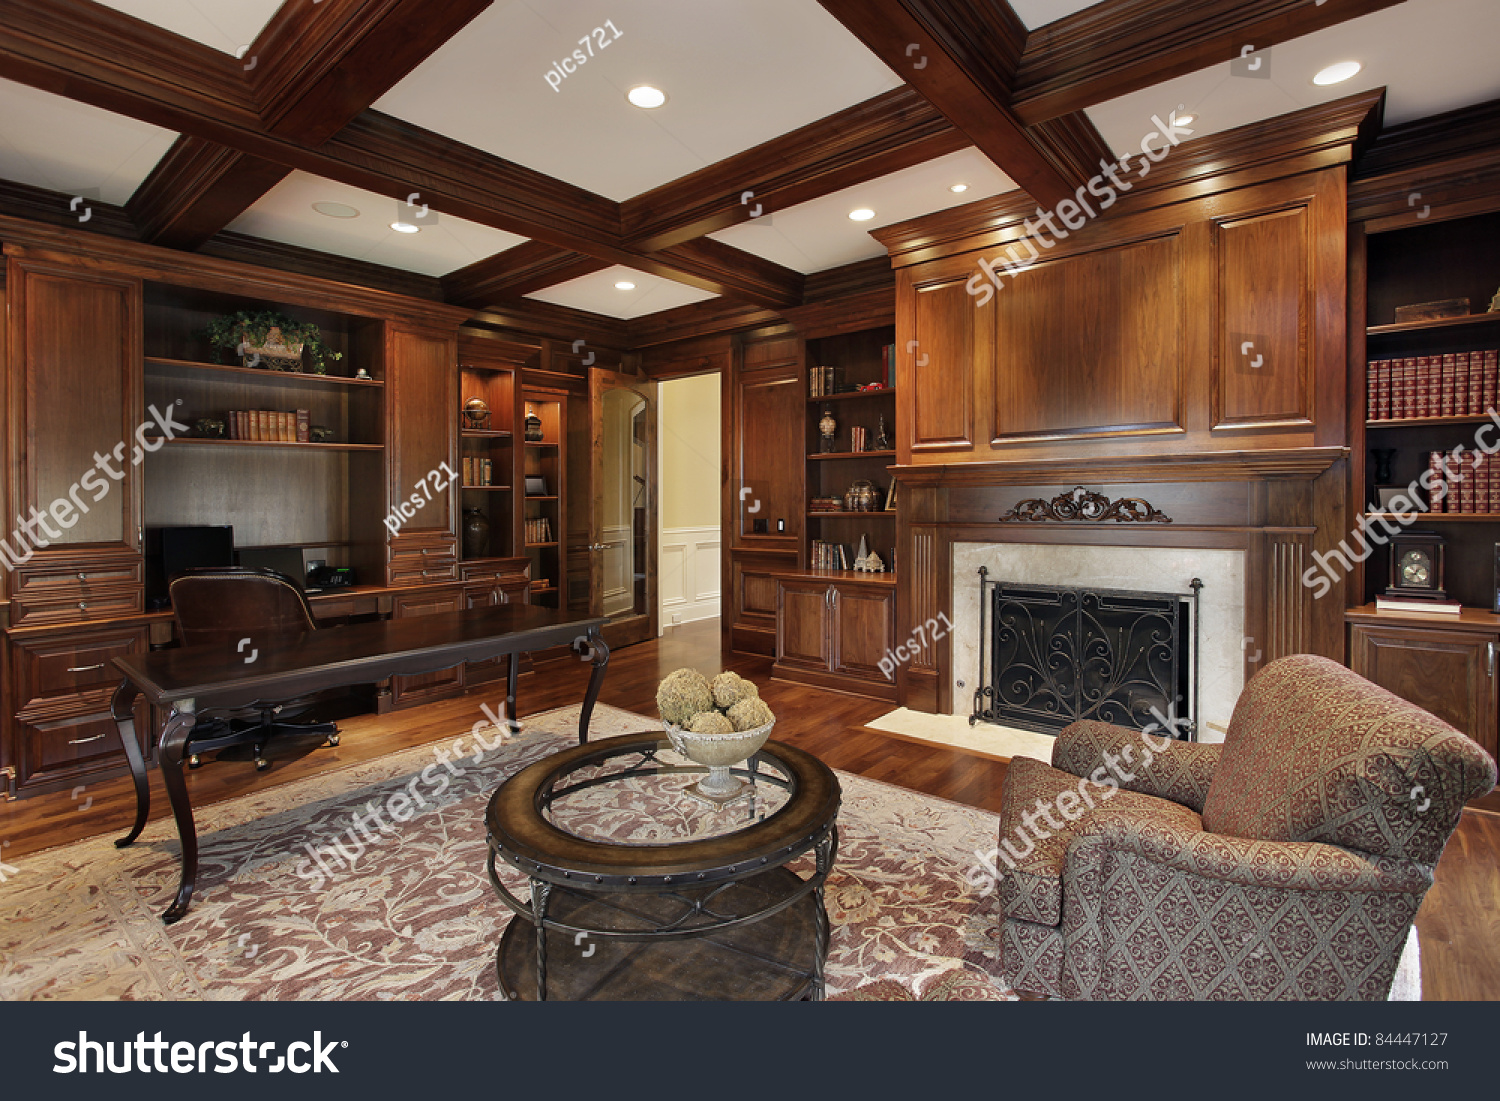 Library In Luxury Home With Marble Fireplace Stock Photo